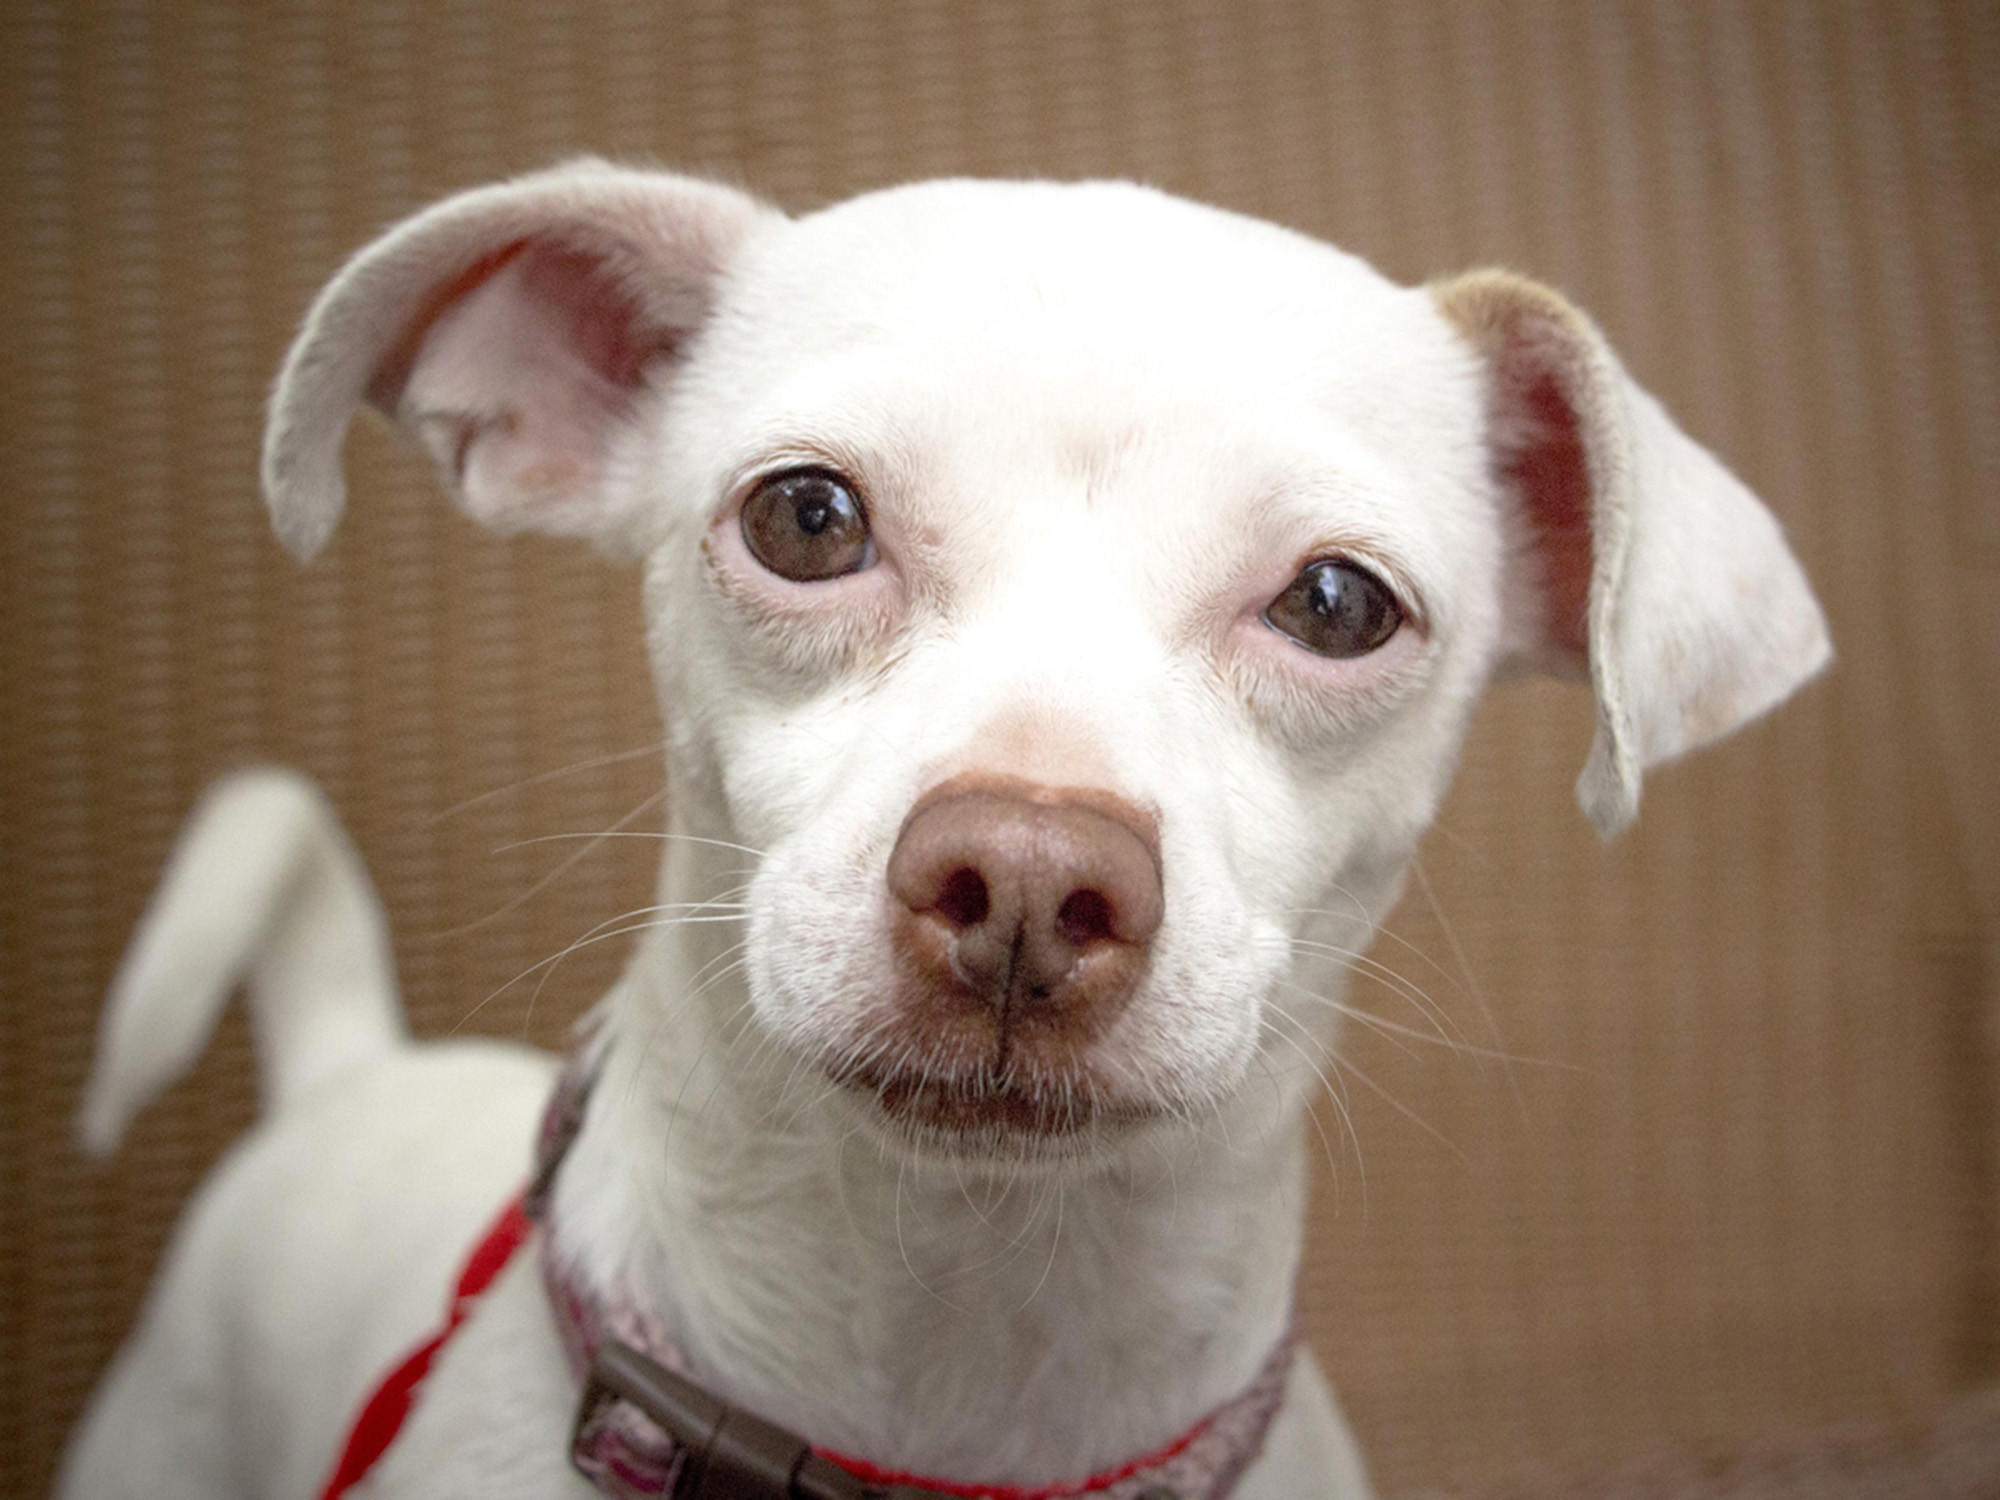 Princess is a 4-year-old white Chihuahua up for adoption by the Pasadena Humane Society & SPCA.